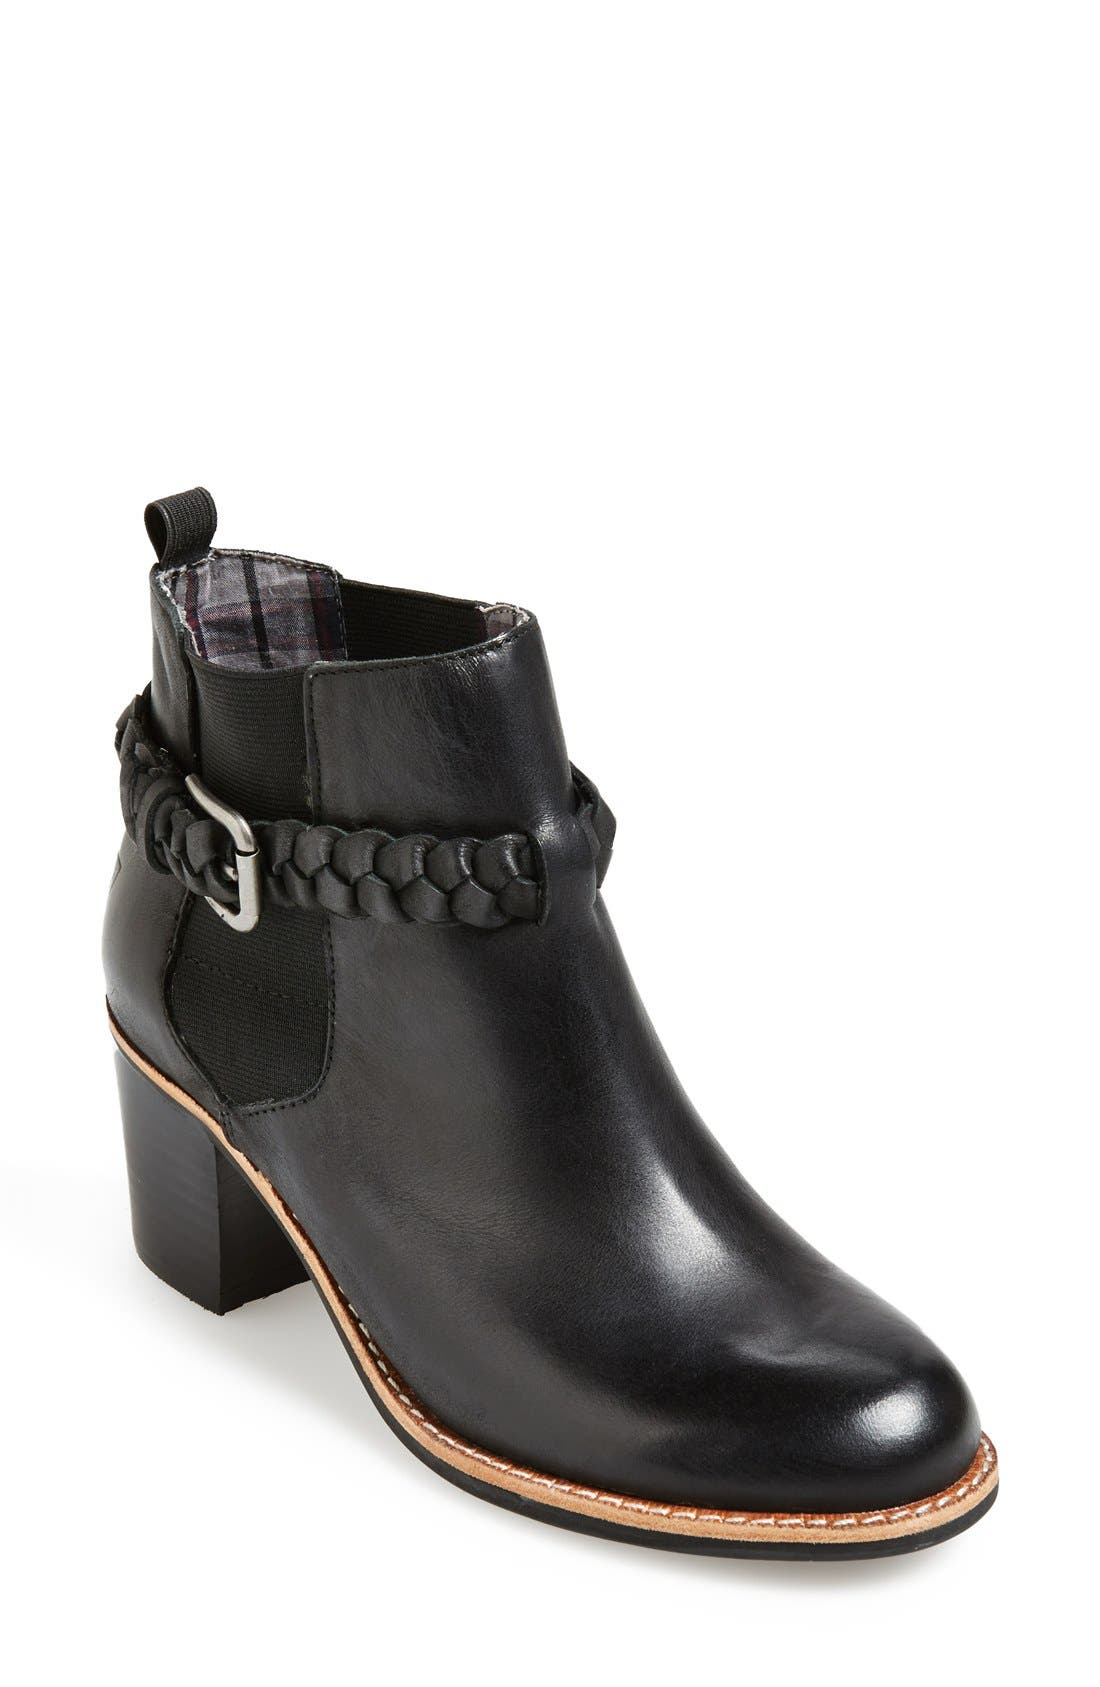 SPERRY Top-Sider<sup>®</sup> 'Liberty' Leather Bootie, Main, color, 001